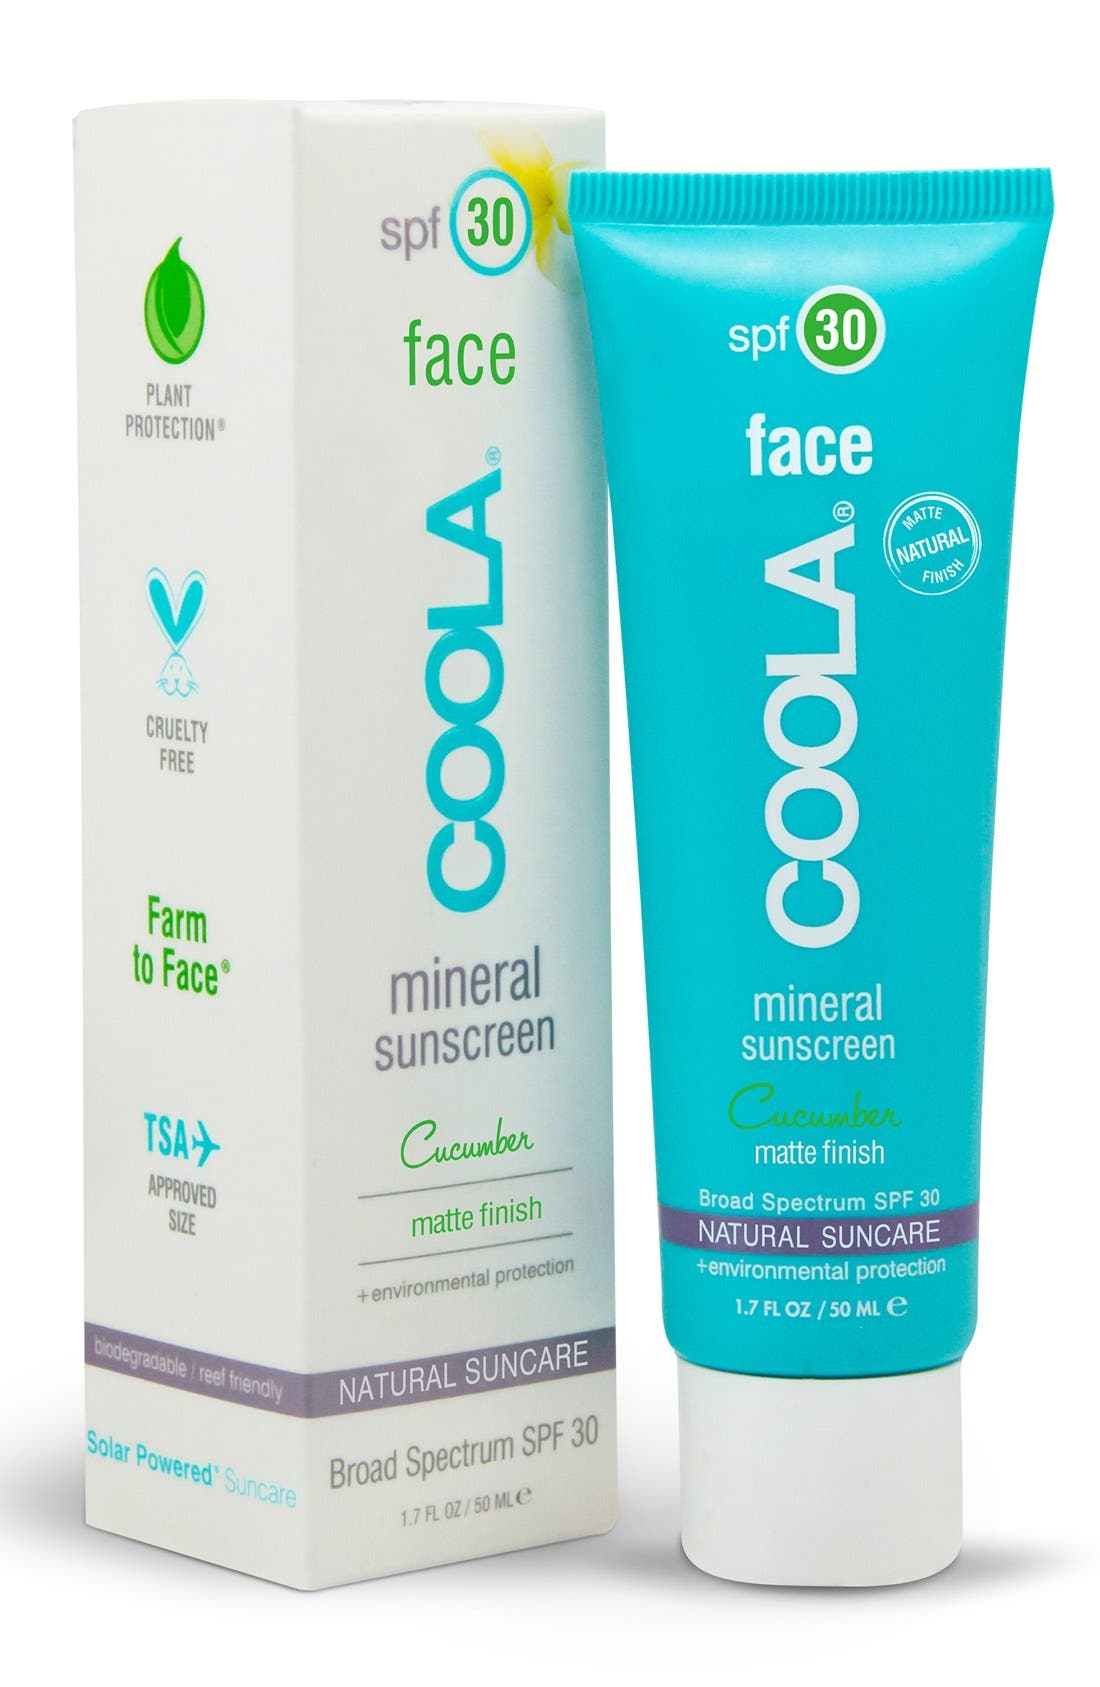 COOLA® Suncare Cucumber Face Mineral Sunscreen SPF 30